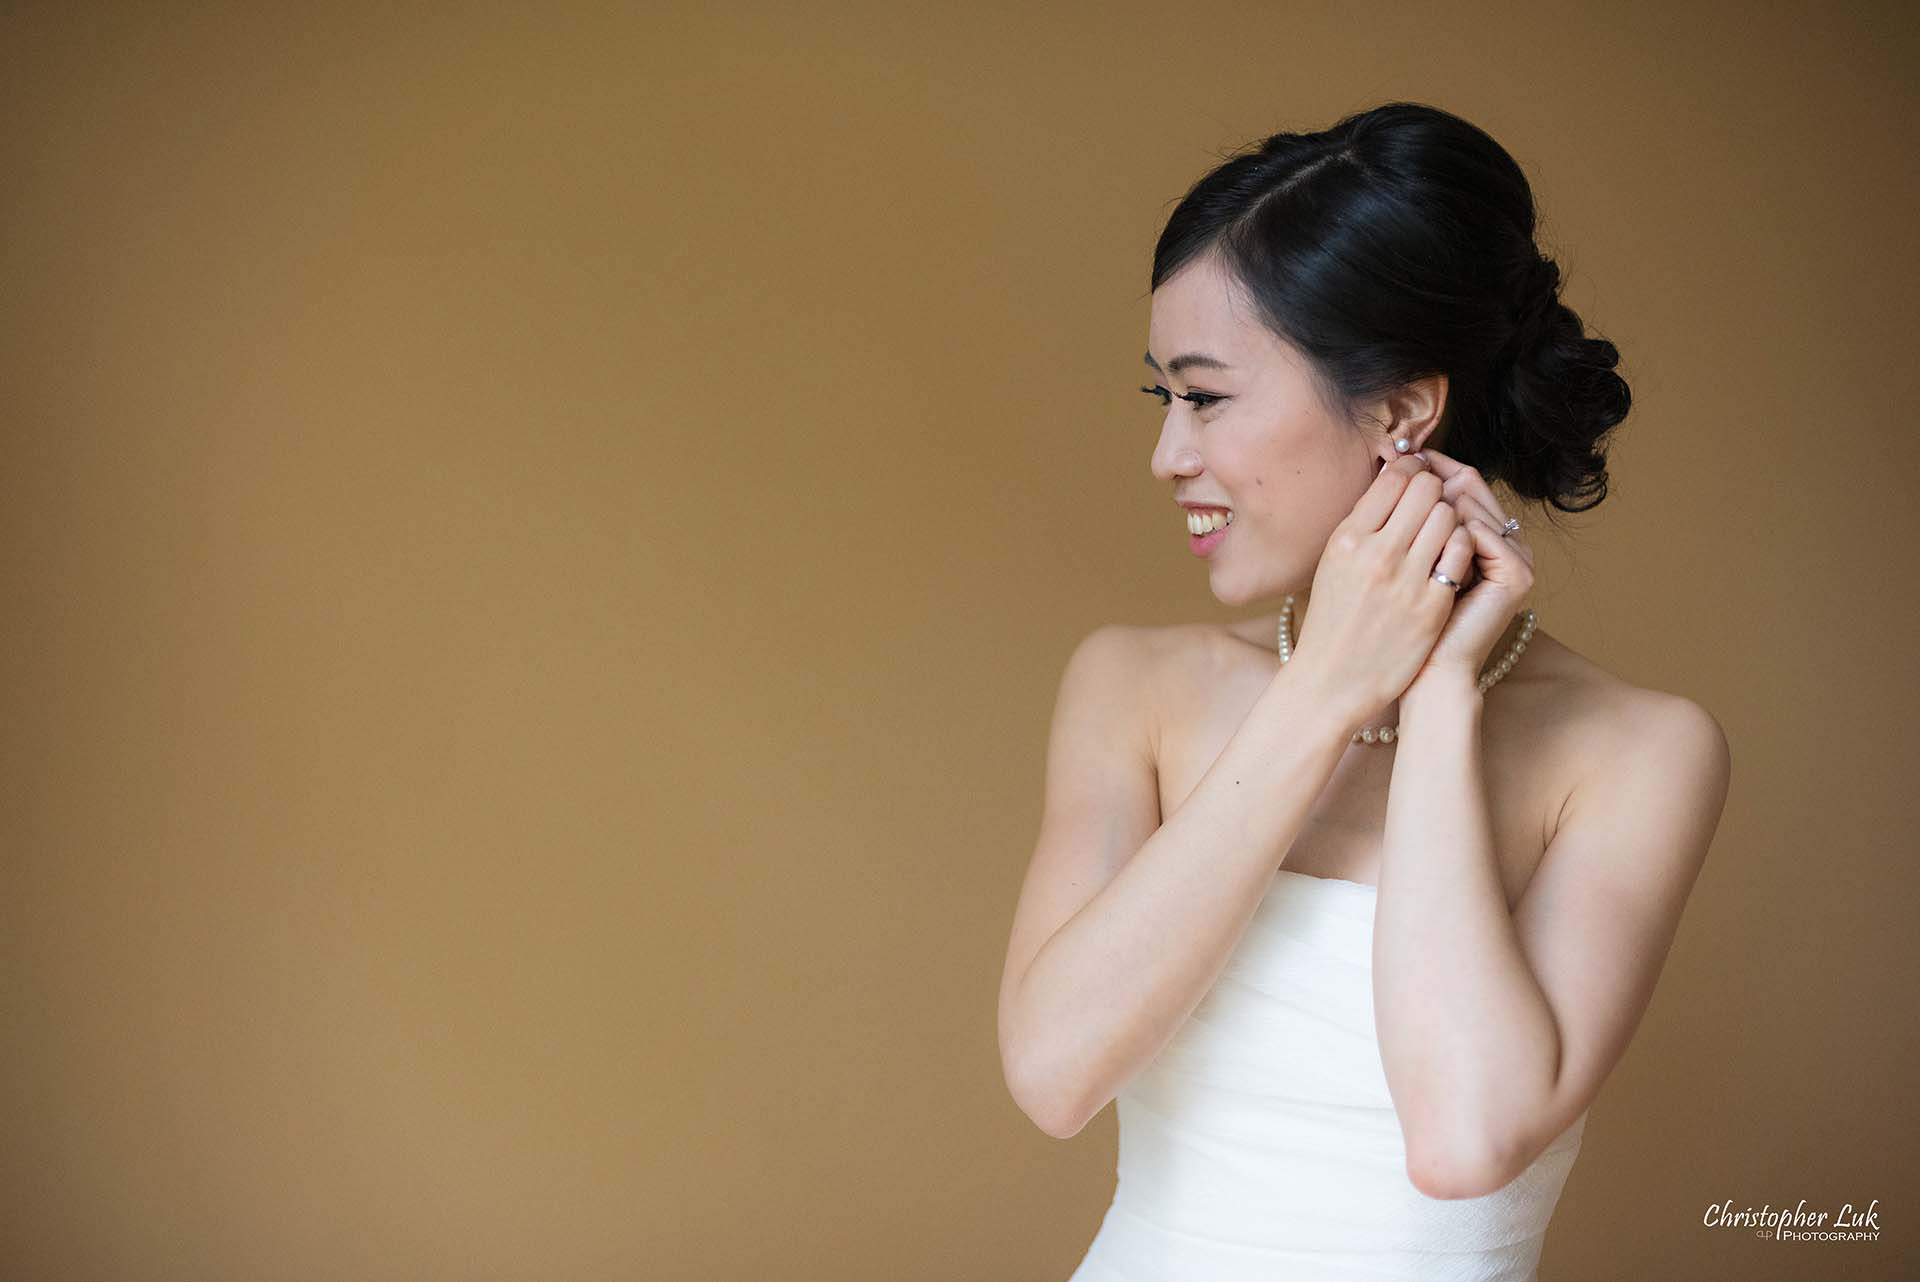 Christopher Luk Toronto Wedding Photographer Bride Getting Ready Preparations Bridal Earrings